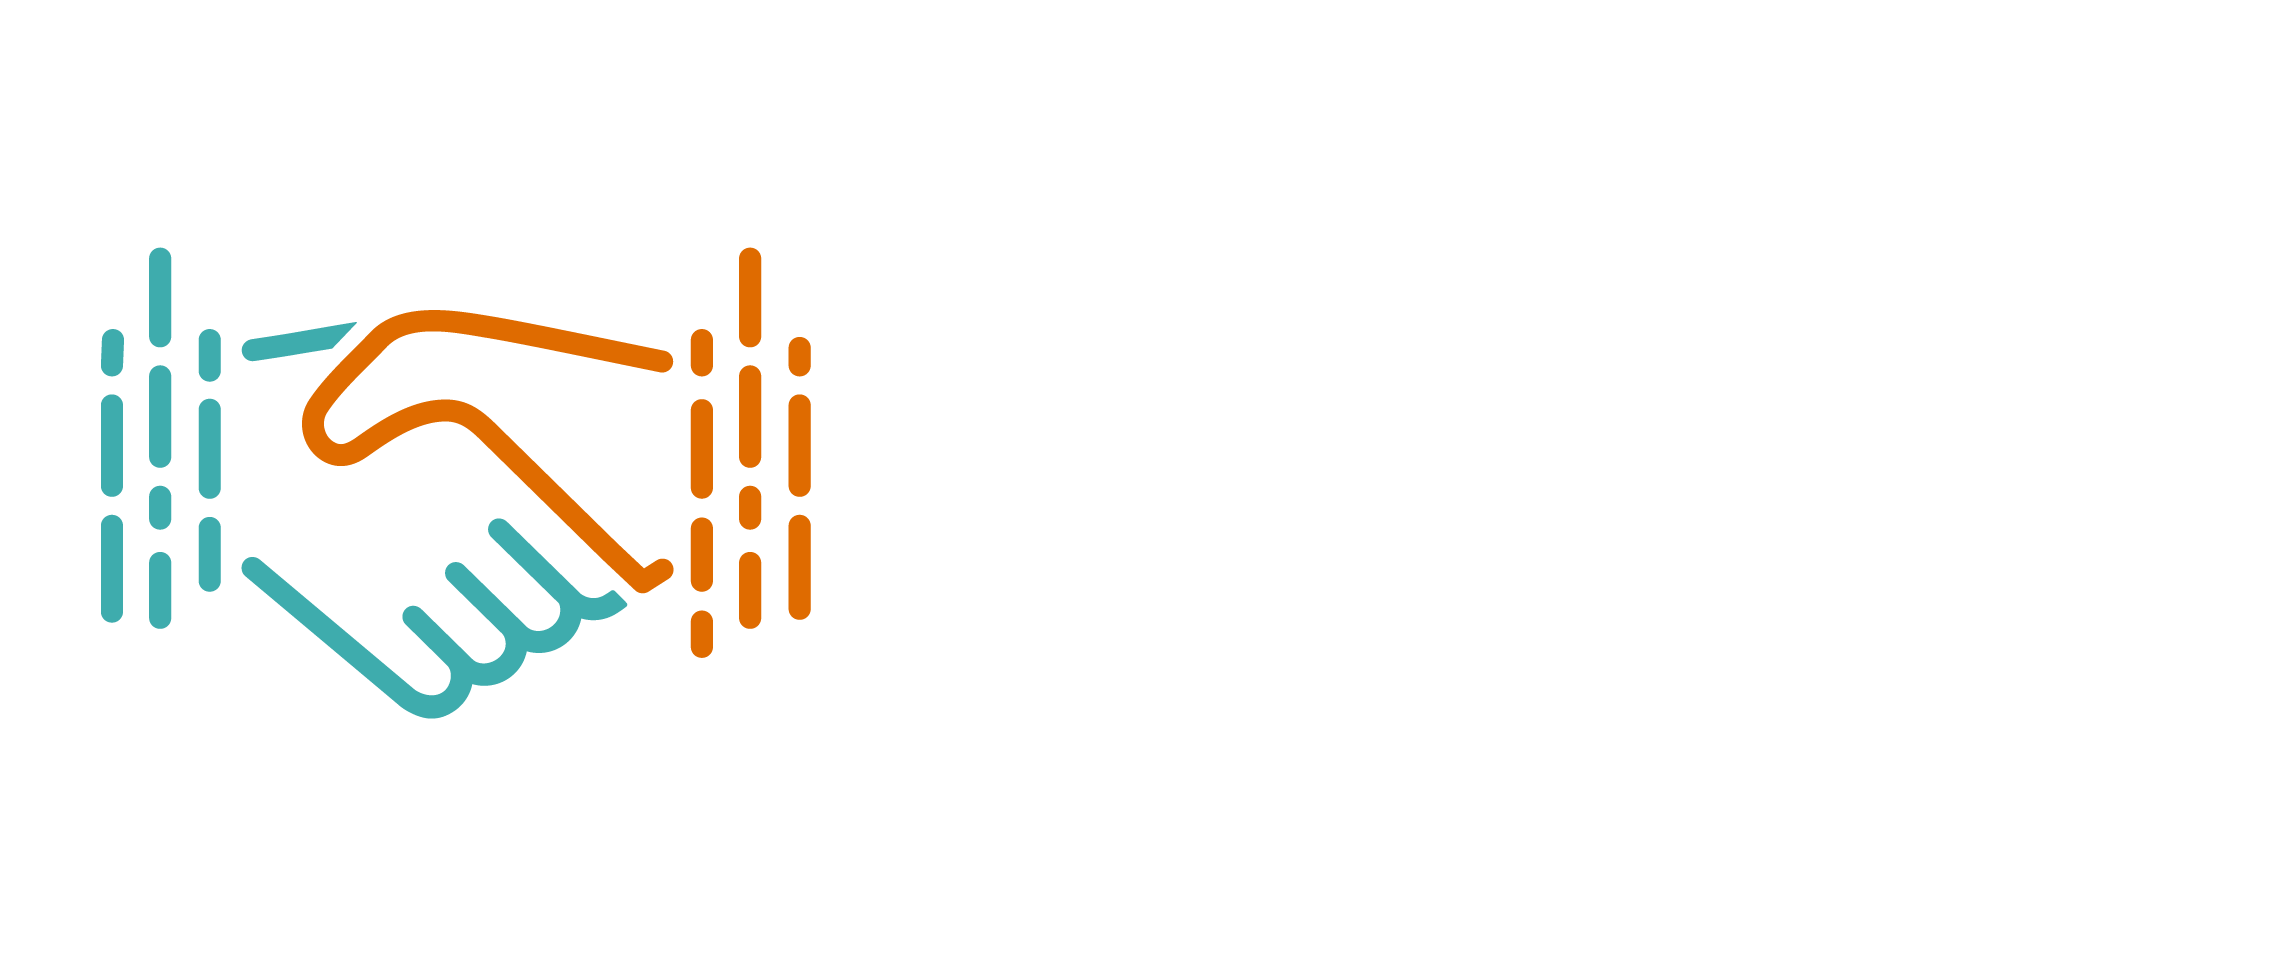 Development Data Partnership